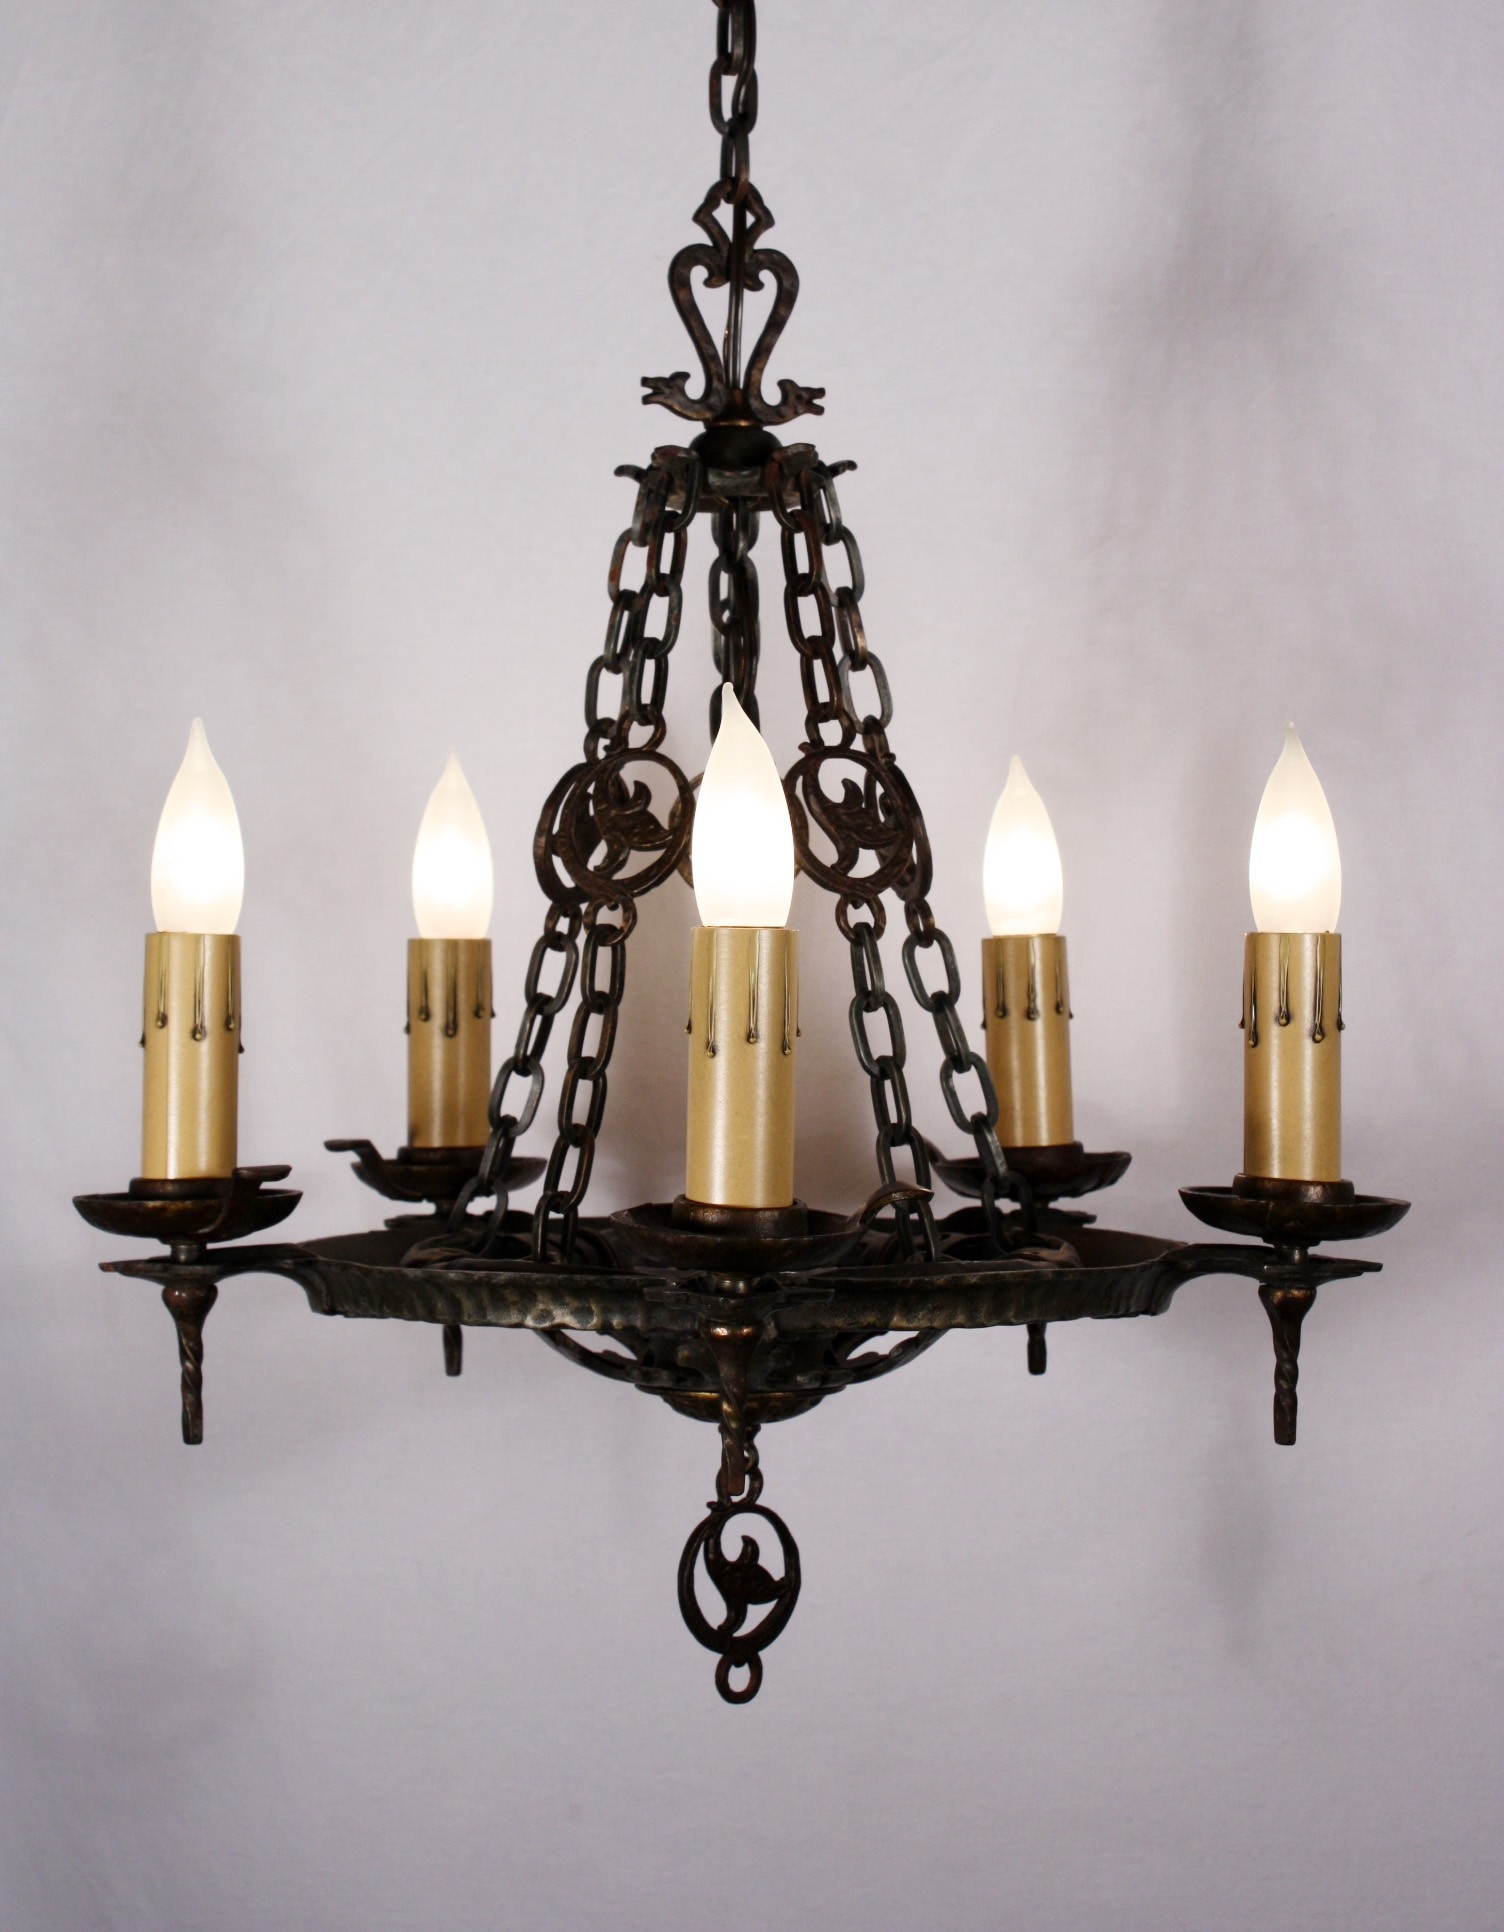 Antique Five Light Cast Iron Tudor Chandelier Signed Virden Throughout Cast Iron Antique Chandelier (Image 7 of 15)